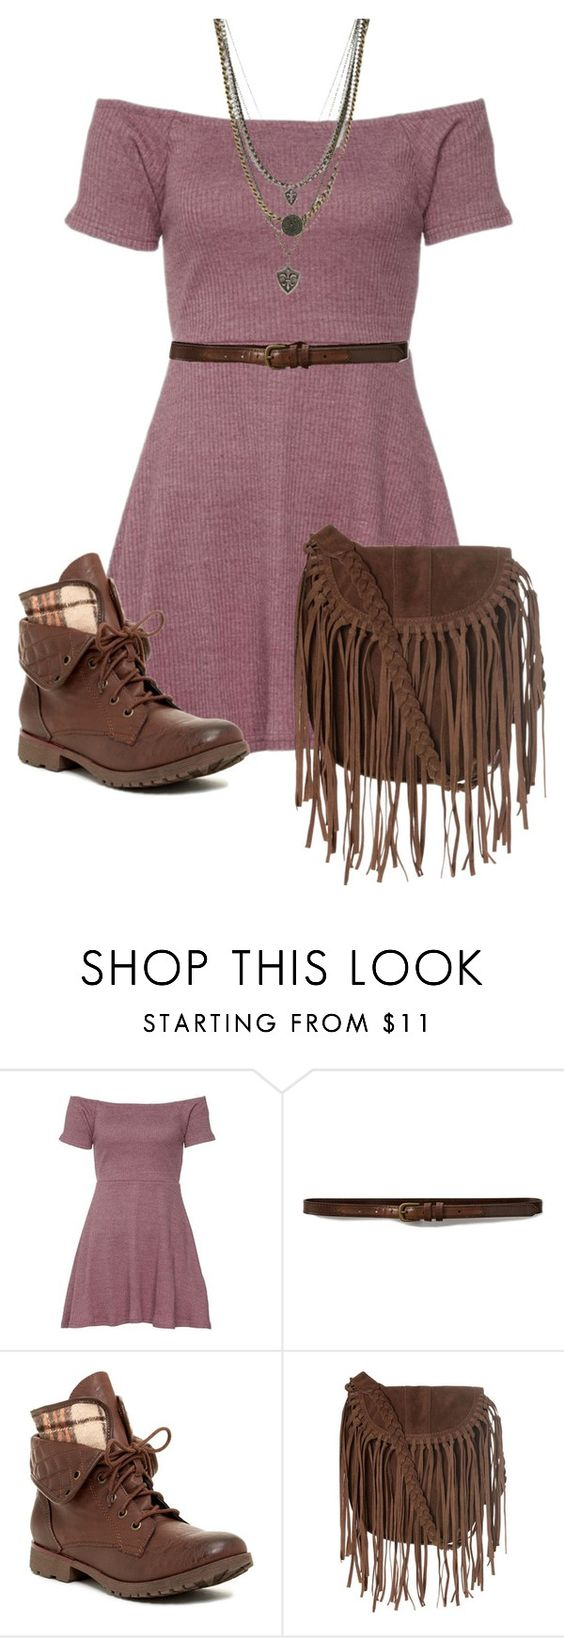 """""""Untitled #5"""" by slayingadragon ❤ liked on Polyvore featuring Abercrombie & Fitch, Rock & Candy, Glamorous and Ettika"""